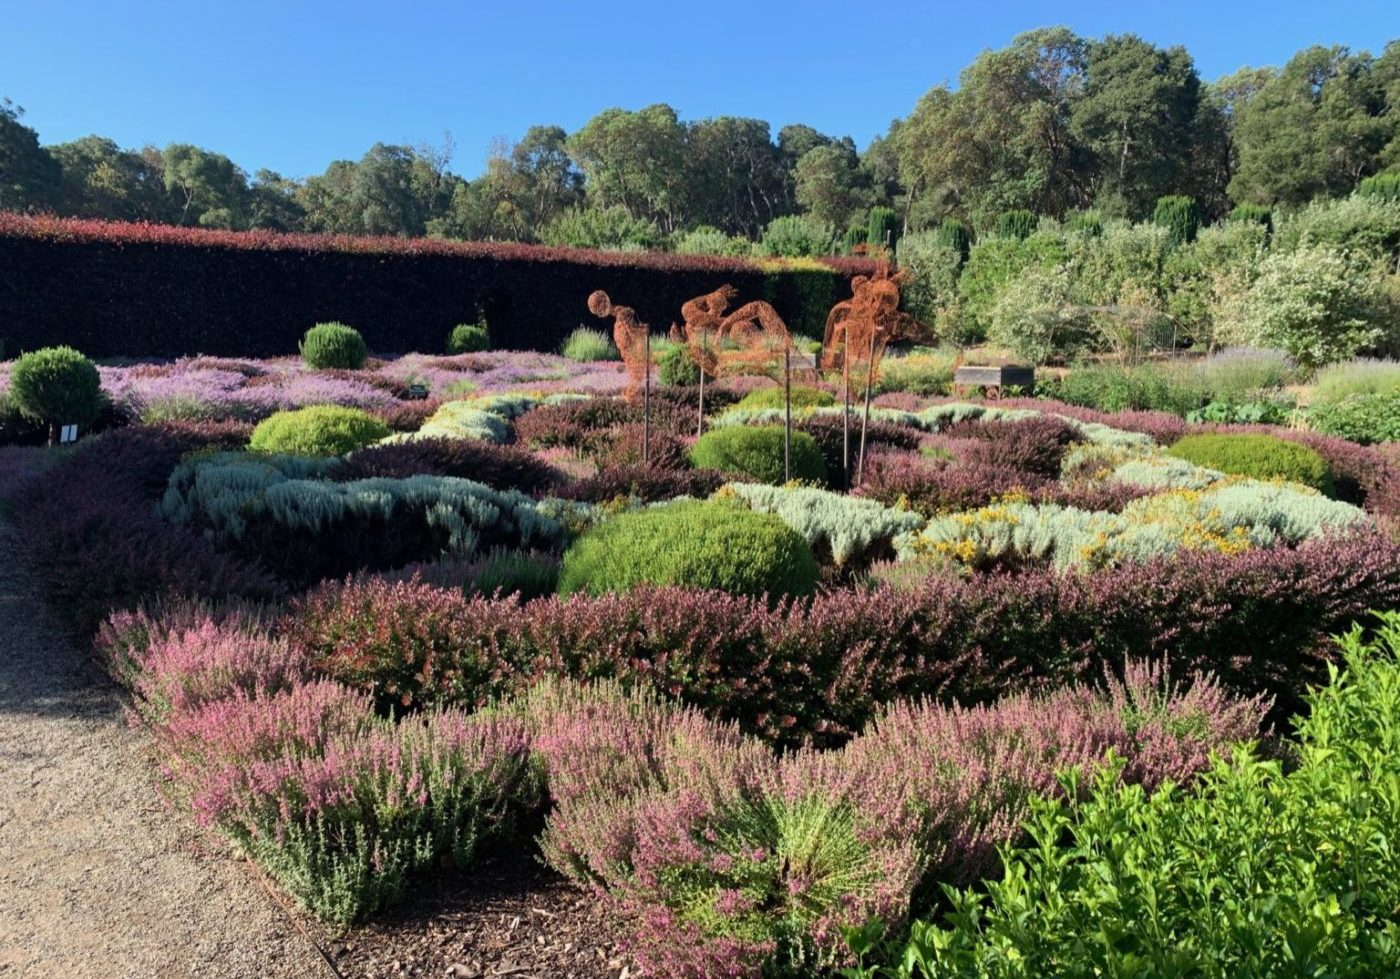 Don't miss the Knot Garden during your visit!